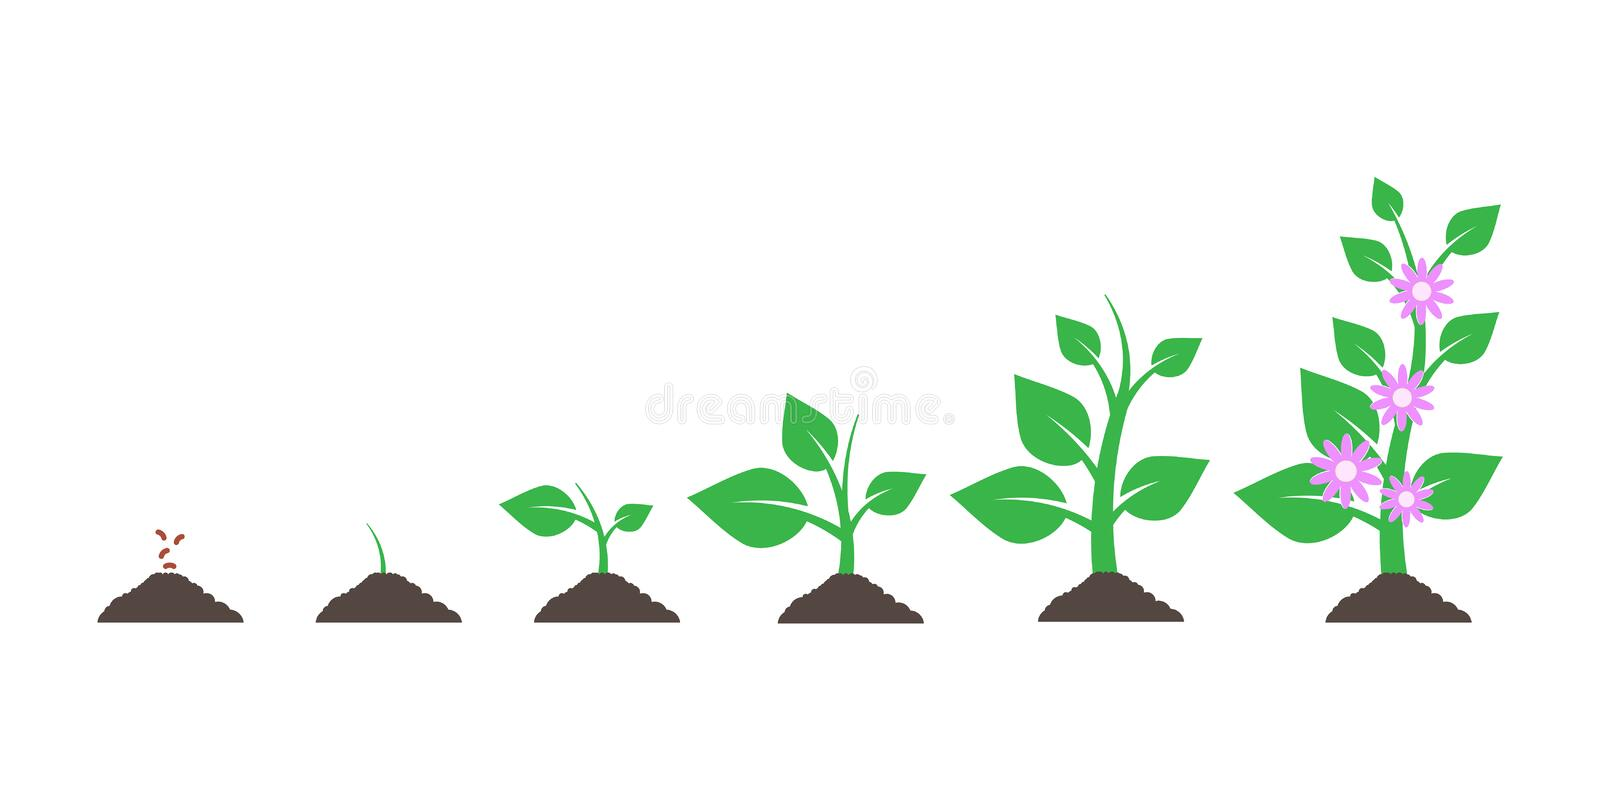 Planting tree. Seedling gardening plant. Seeds sprout in ground isolated on white background. Vector illustration. vector illustration